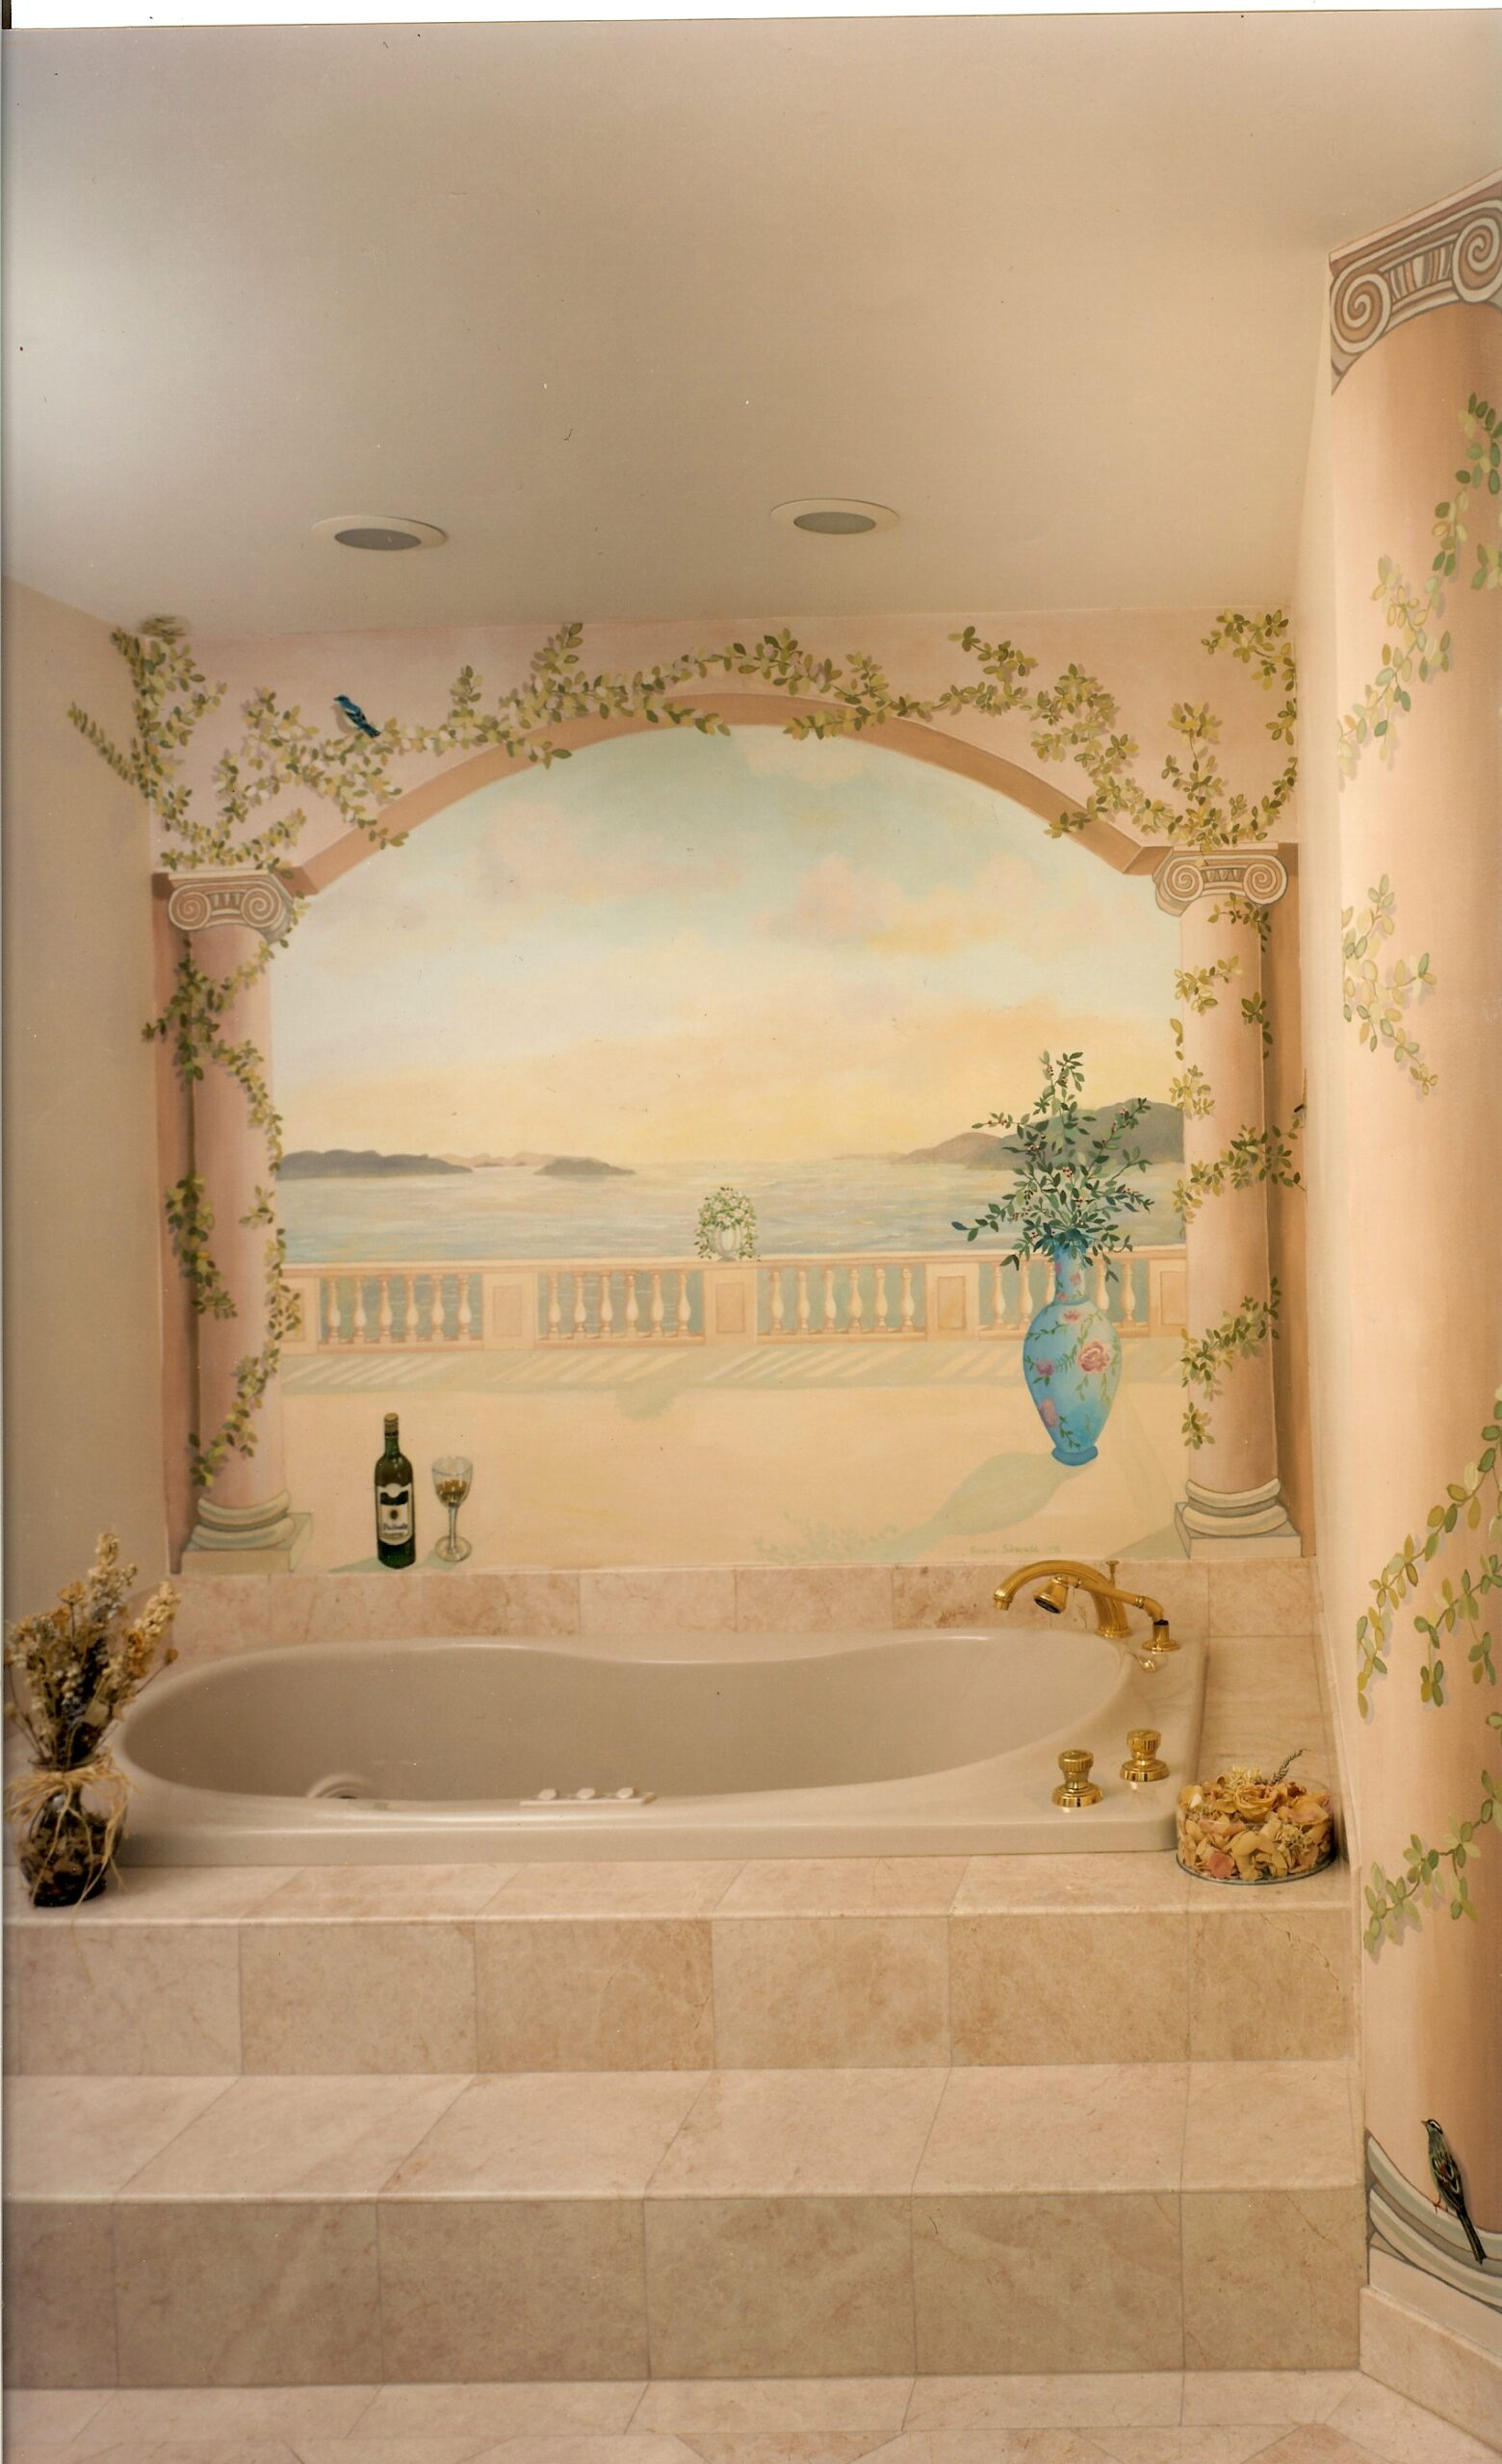 Unique Bathroom Wall Mural Ideas Elaboration - Art & Wall Decor ...